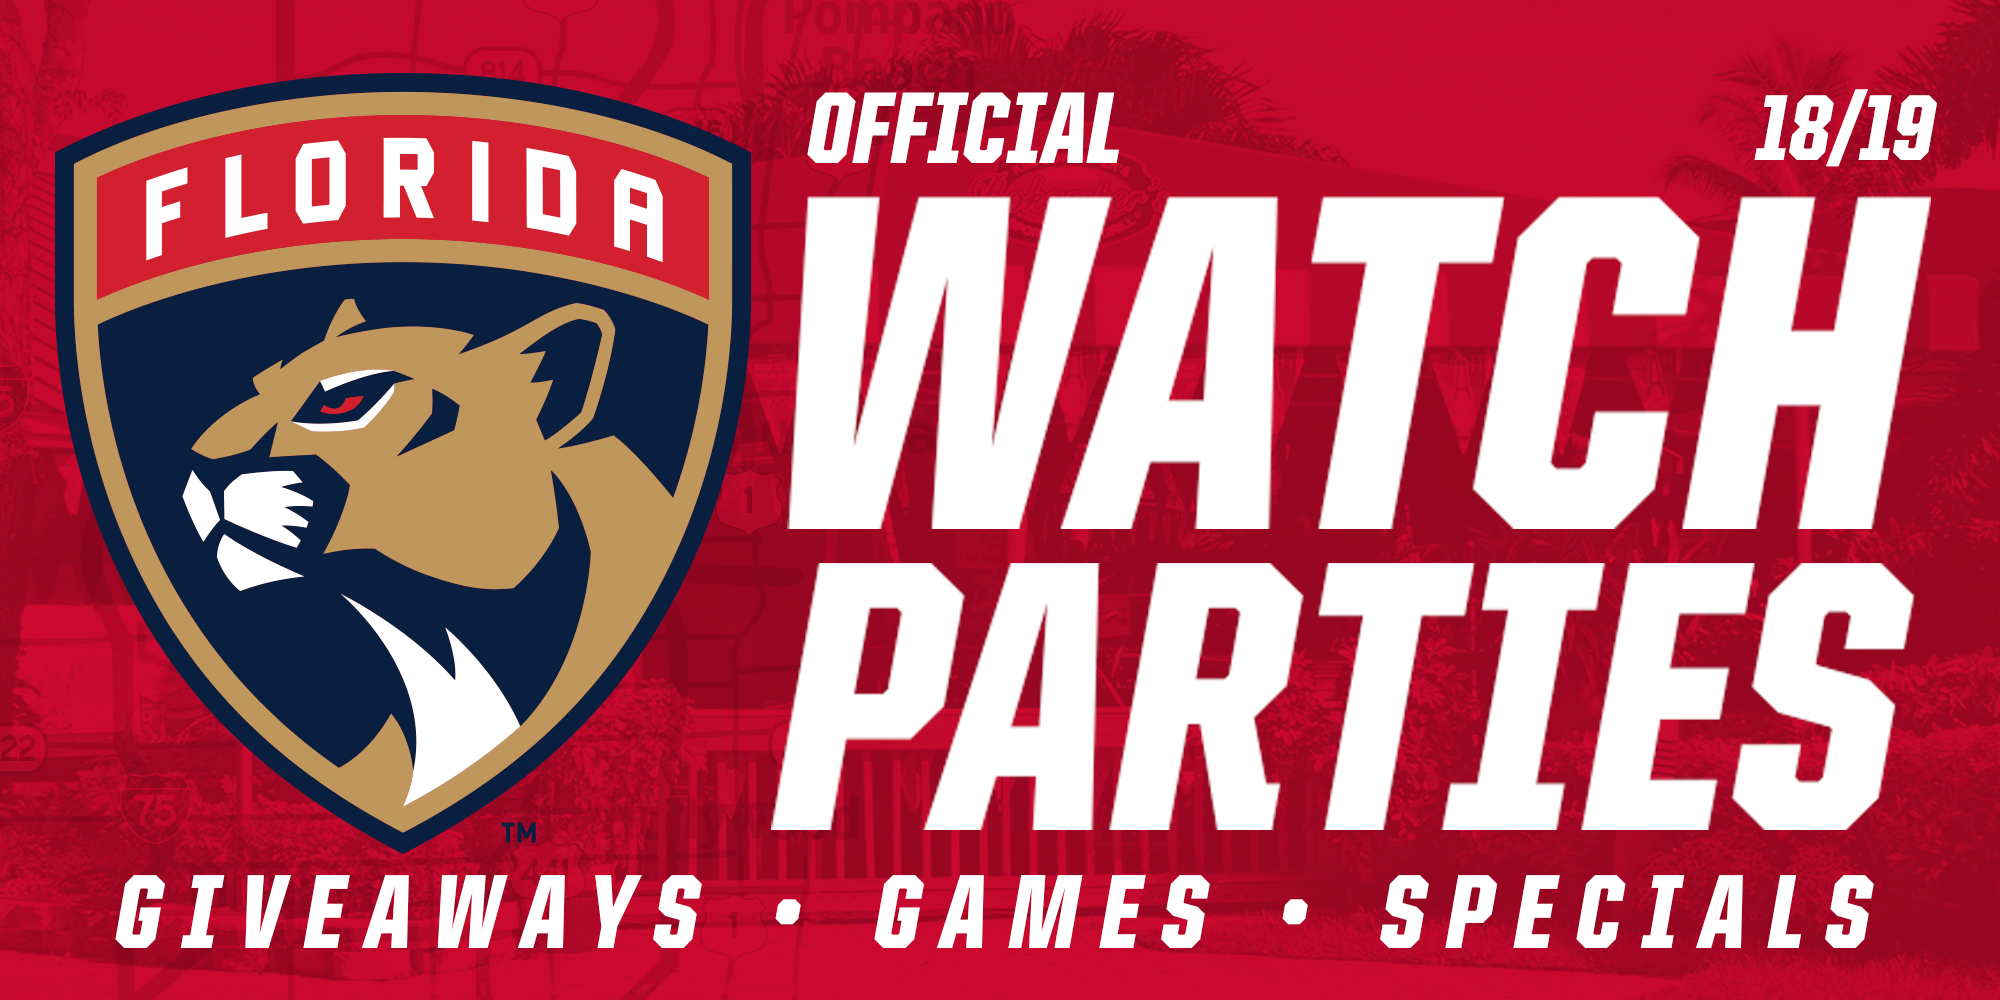 Florida Panthers Official Watch Parties image